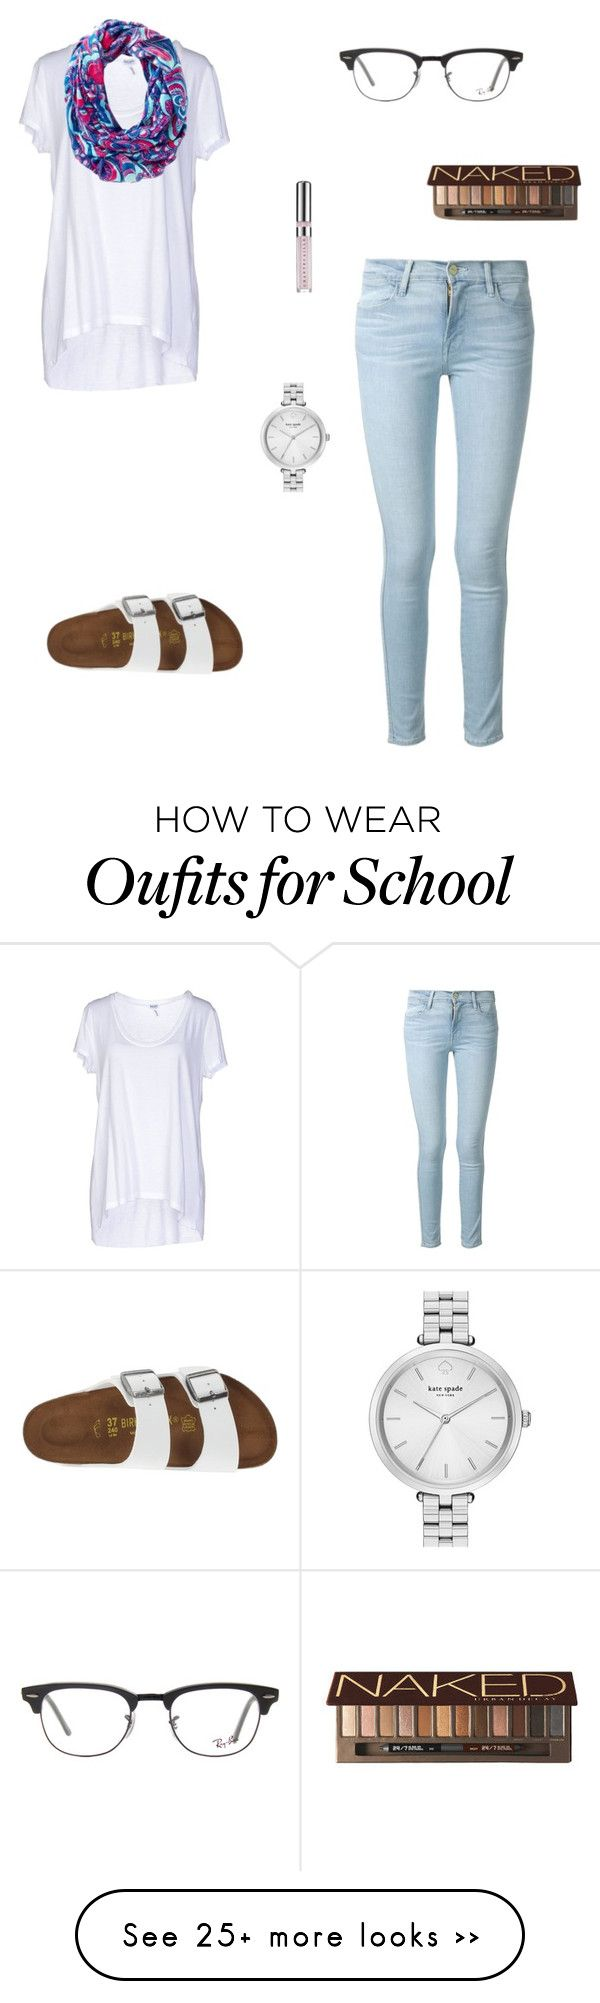 """""""Almost done with school and it's not even noon!"""" by oliviacat1215 on Polyvore featuring Frame Denim, Splendid, Birkenstock, Ray-Ban, Kate Spade, Chantecaille and Urban Decay"""